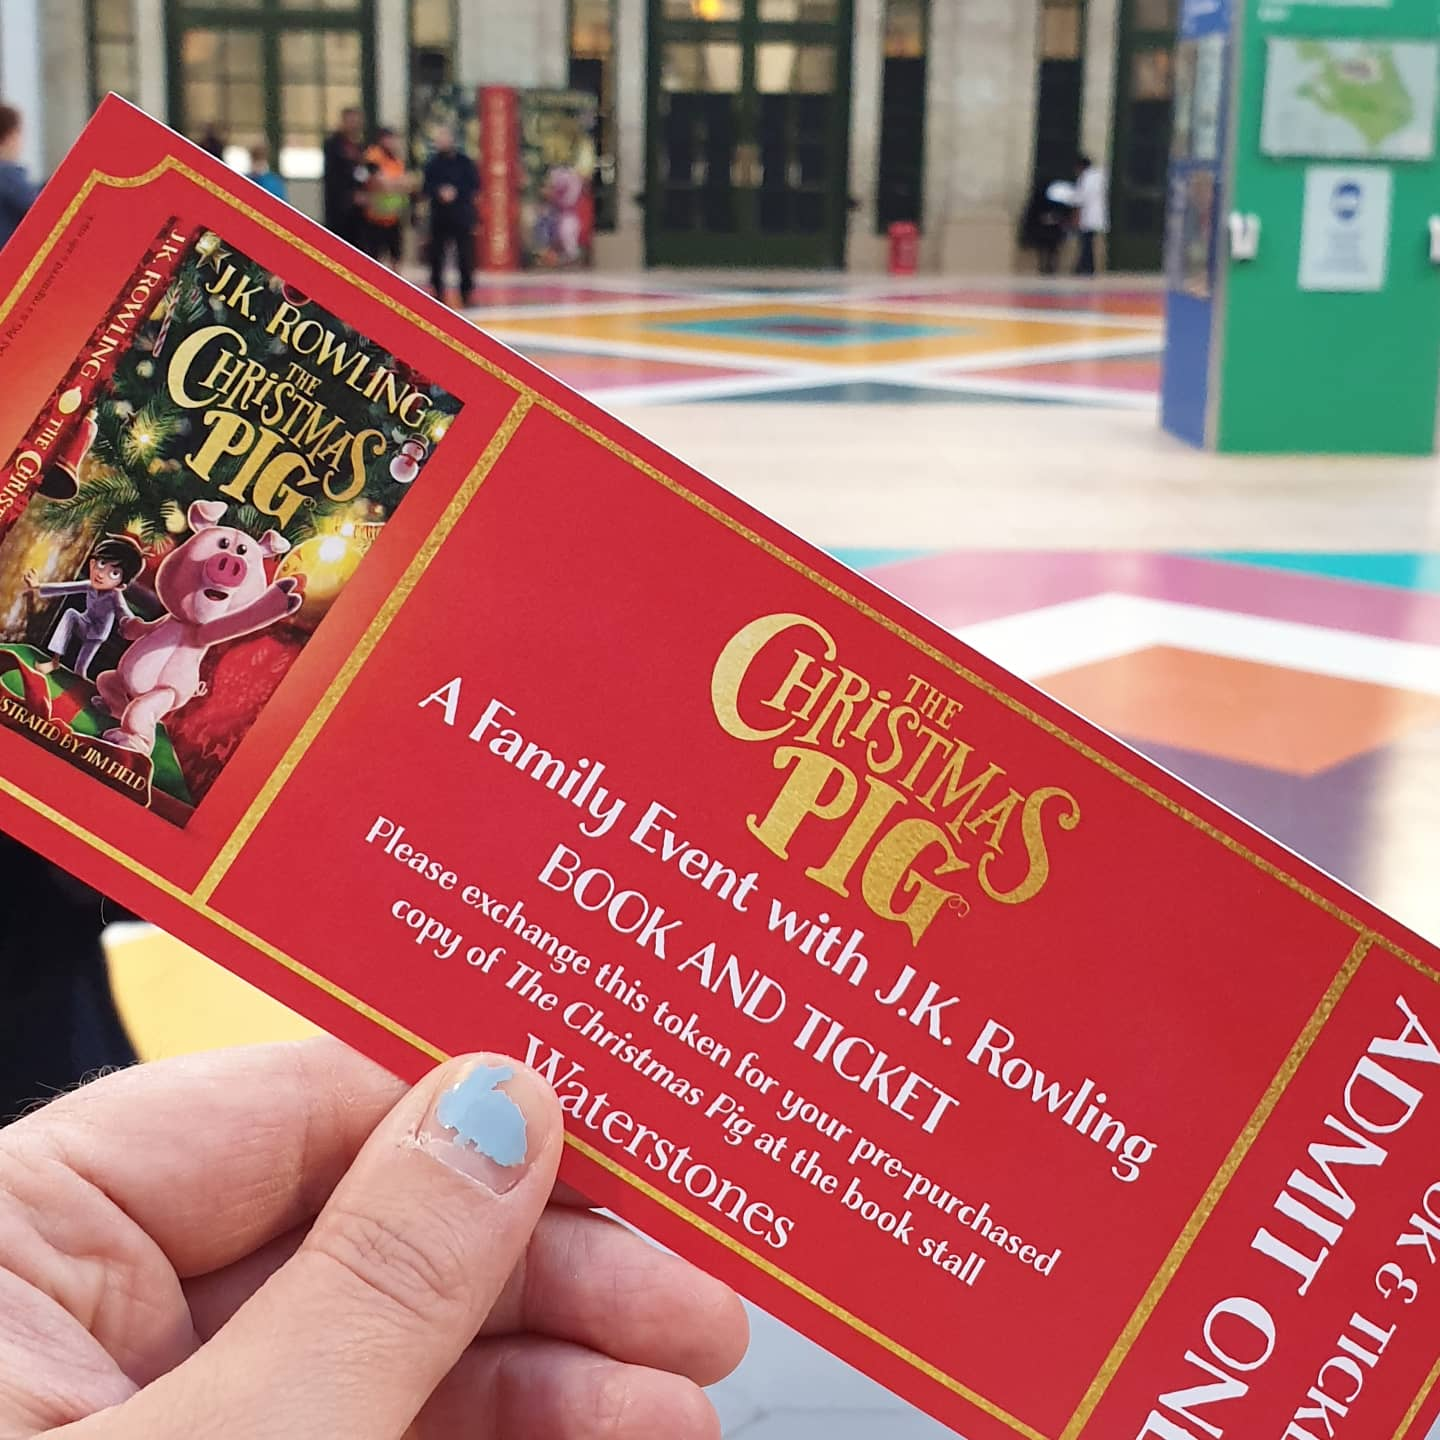 a ticket to a book signing event